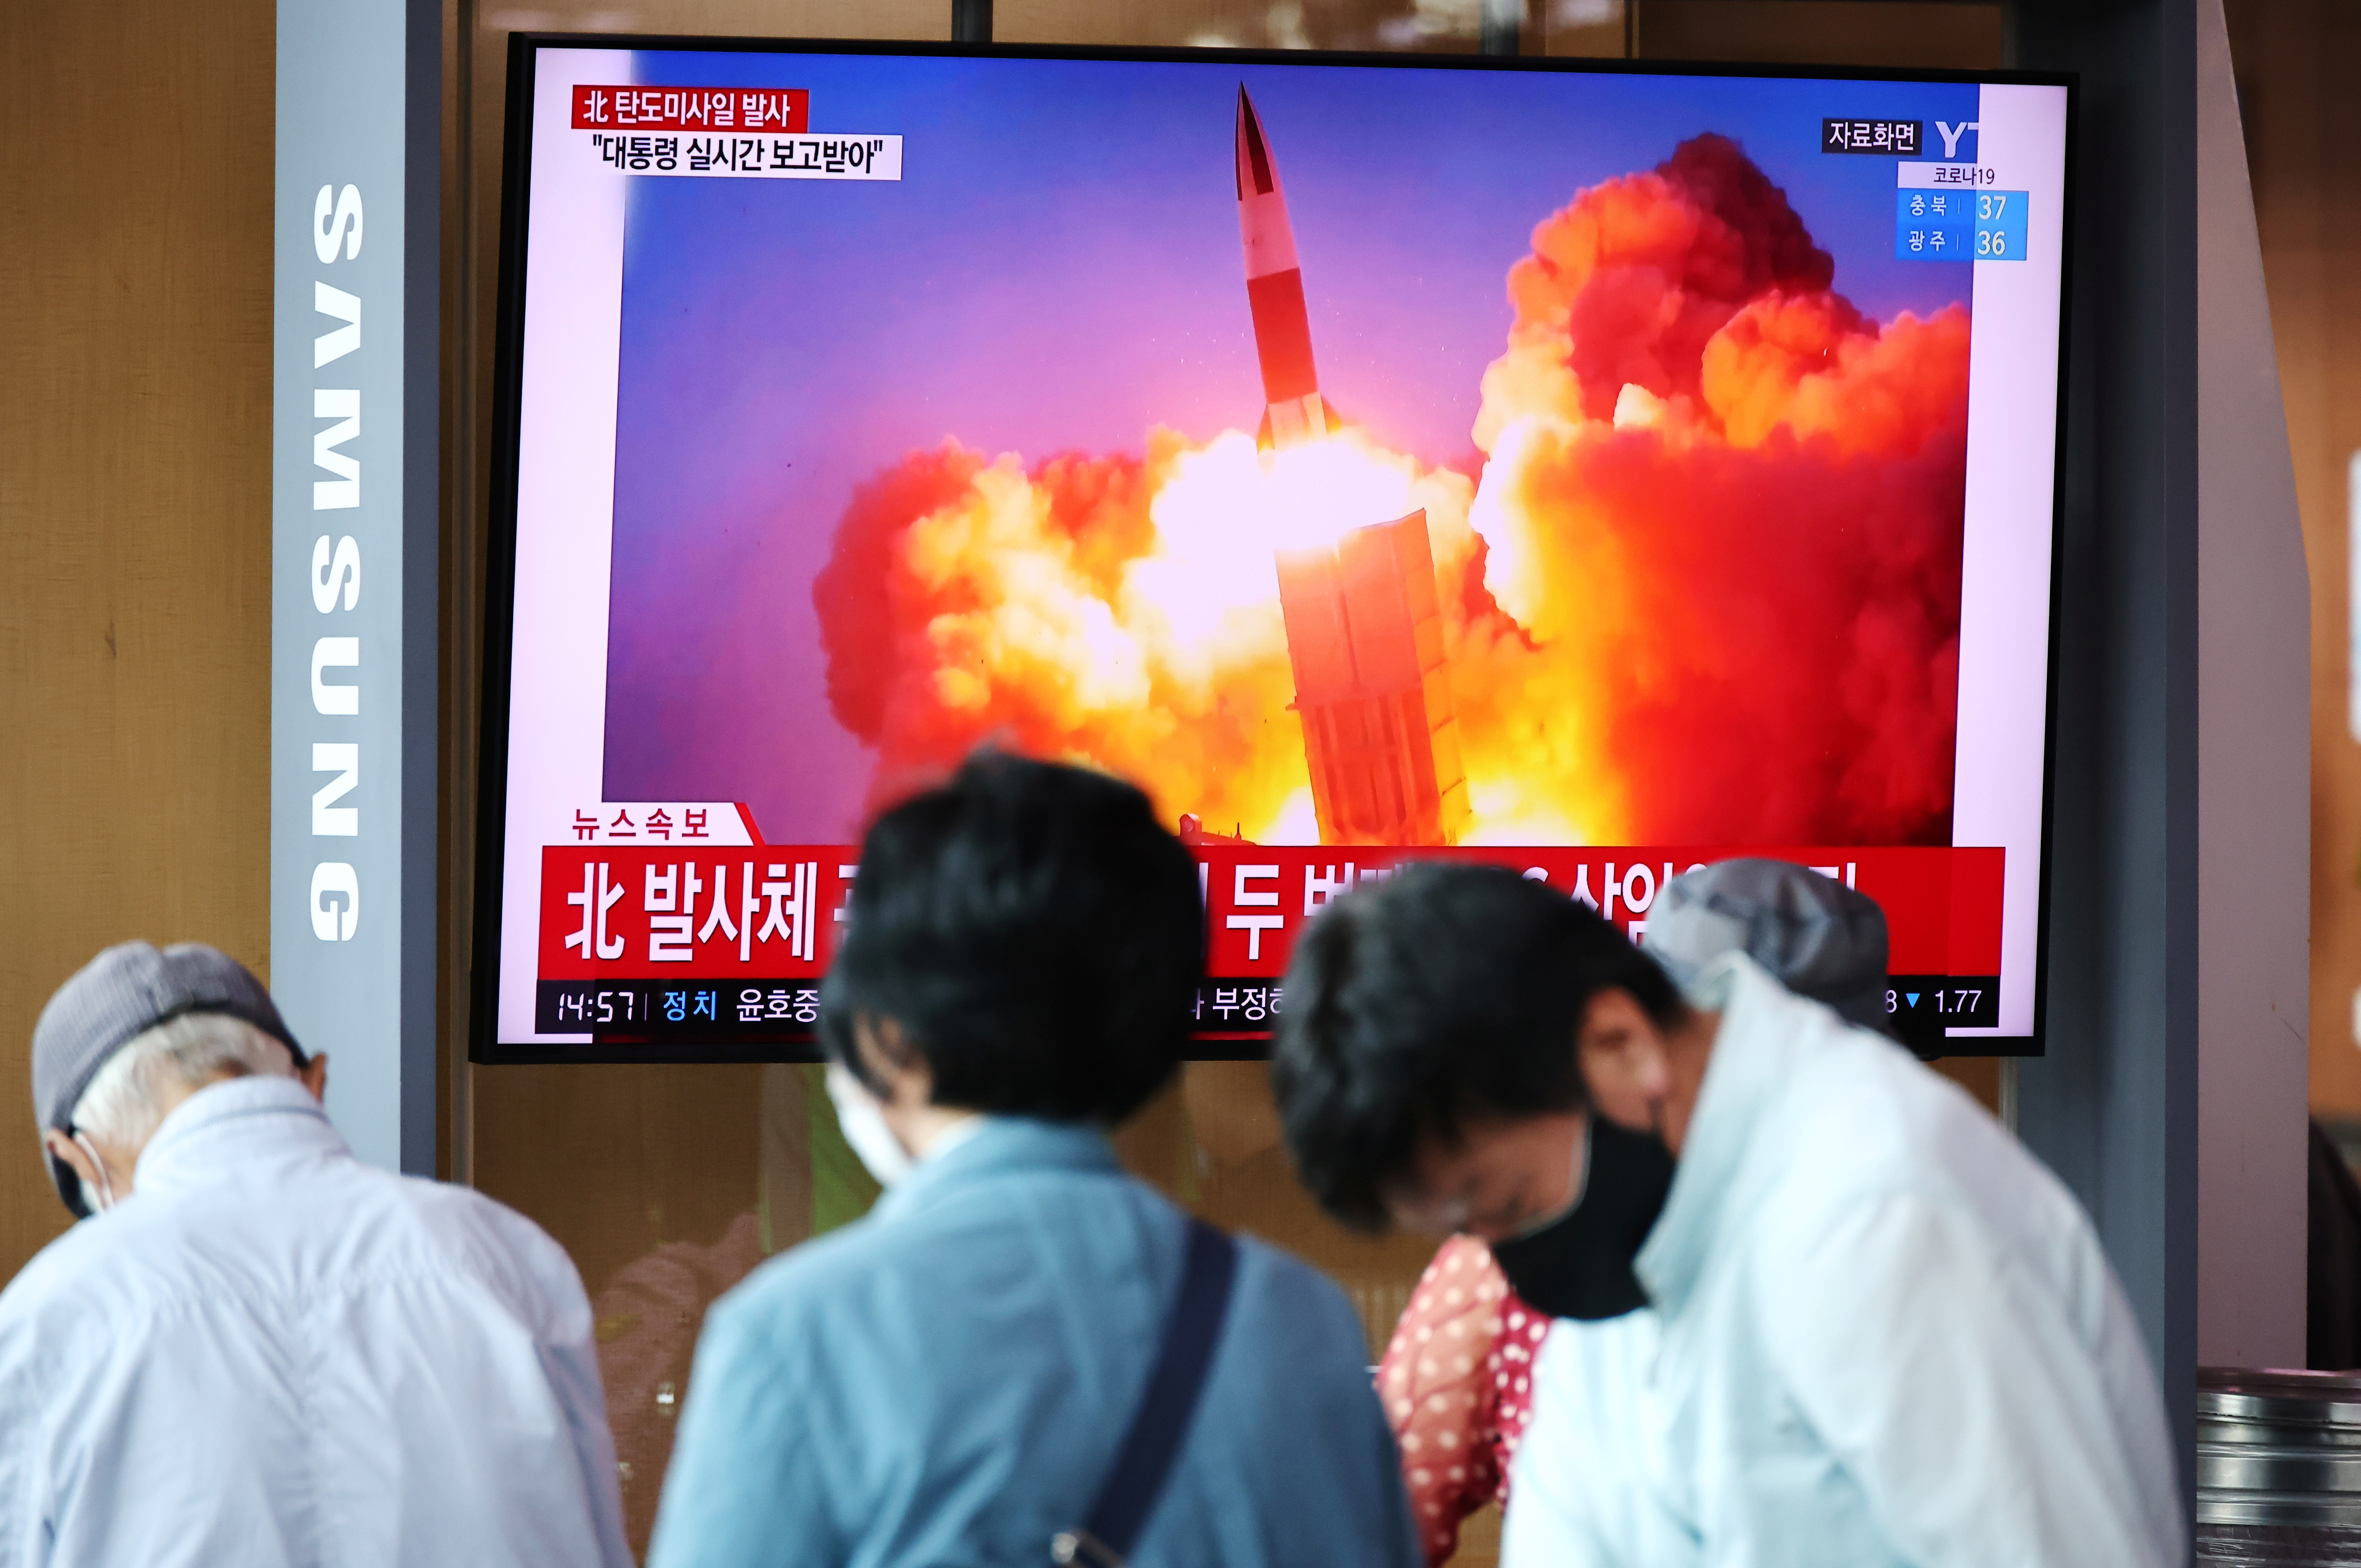 Timeline: North Korea's tests and summits over recent years